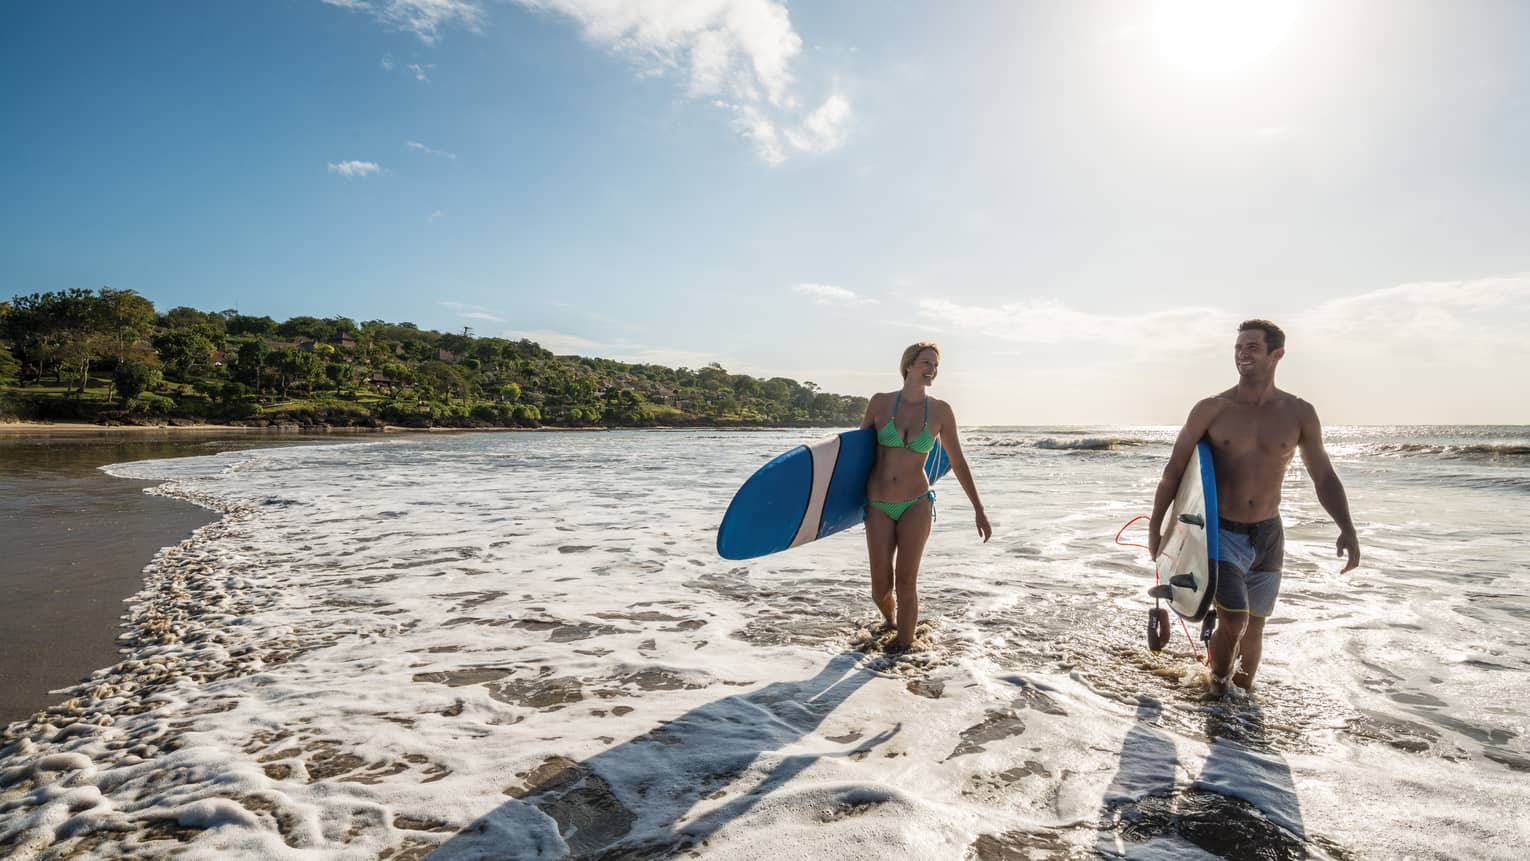 Man and woman in swimsuits walk on beach through surf holding surfboards